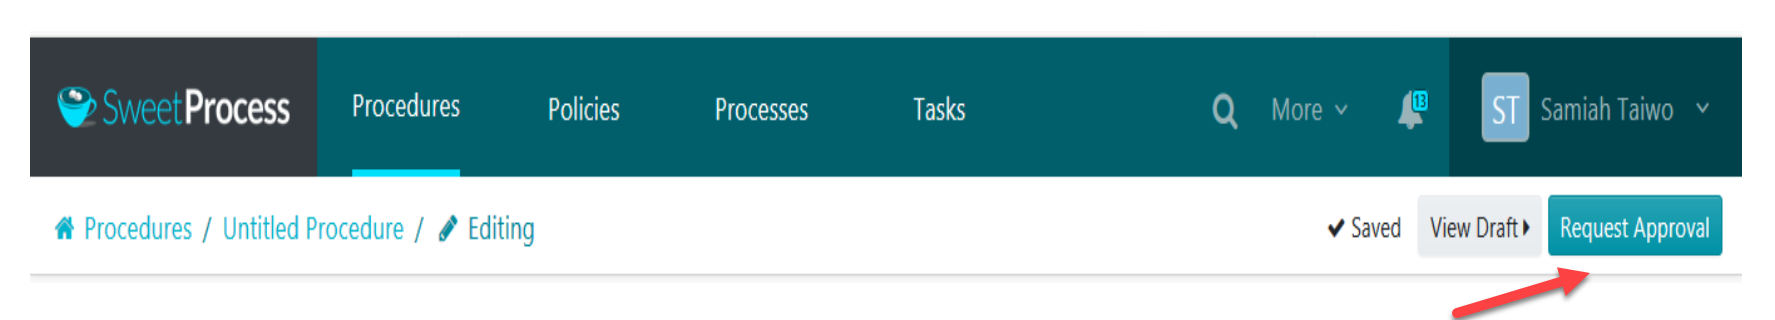 """Step 1: To get the draft of a procedure approved, click on the """"Request Approval"""" button."""